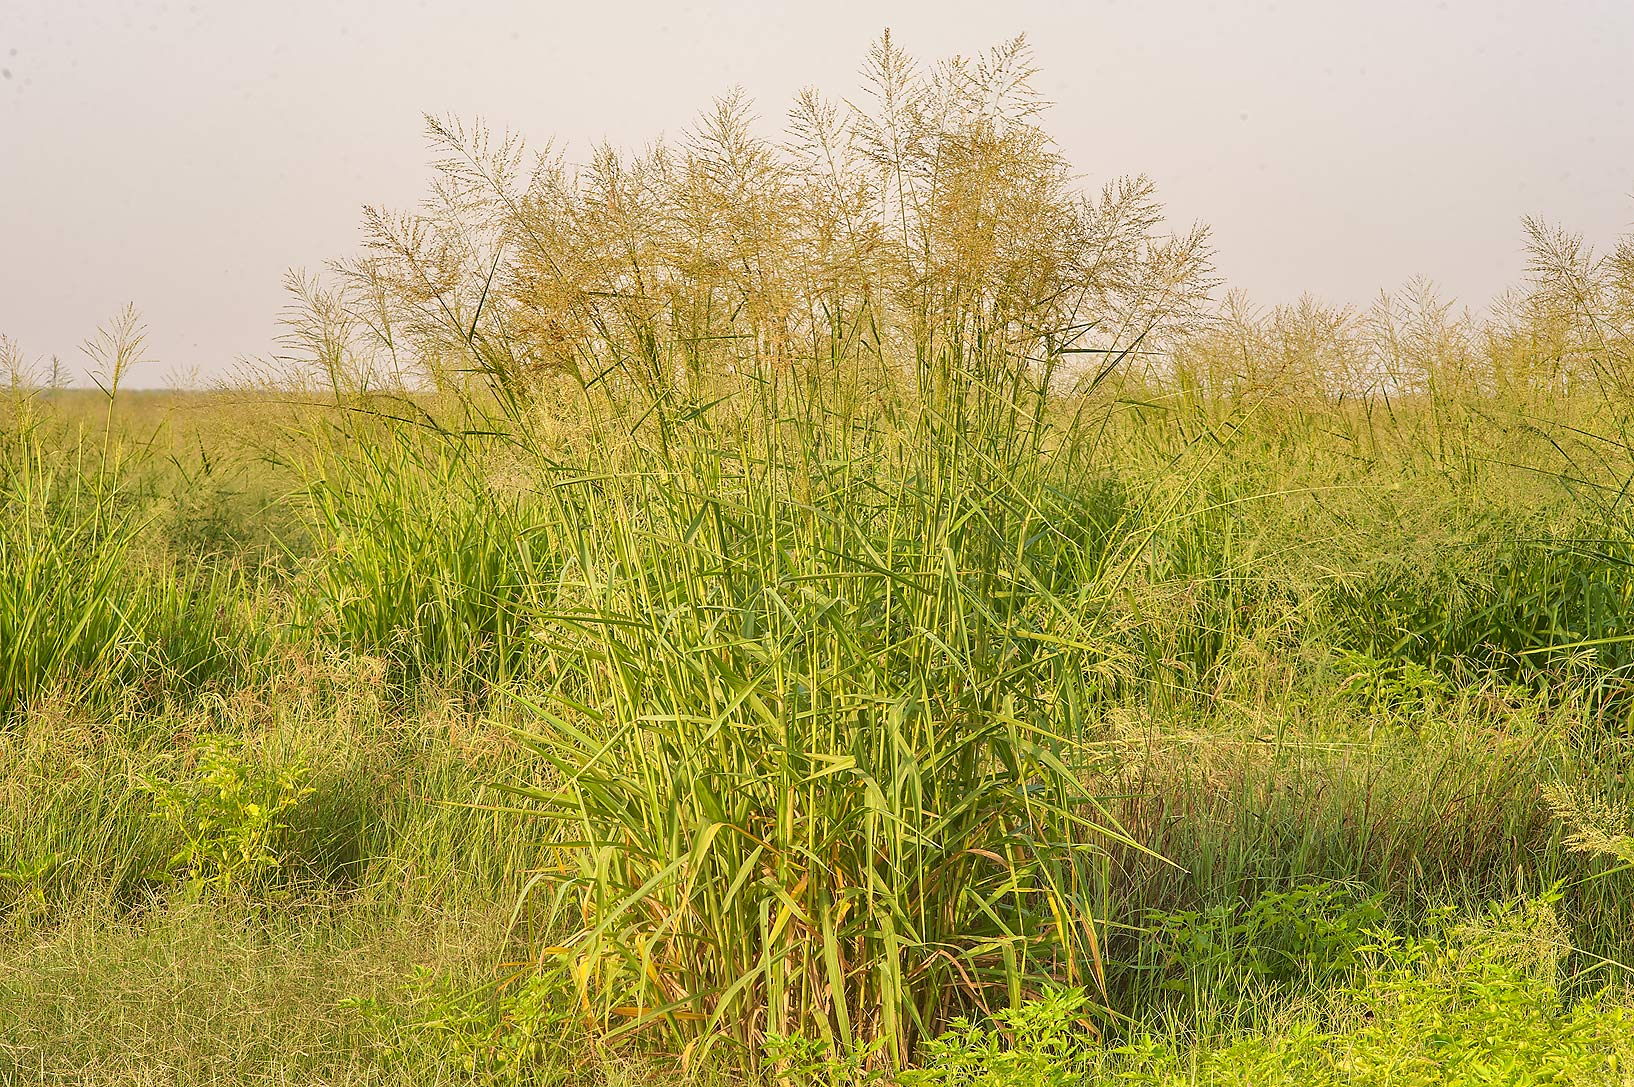 Compact stand of Kleingrass (blue panicgrass...in Irkhaya (Irkaya) Farms. Qatar